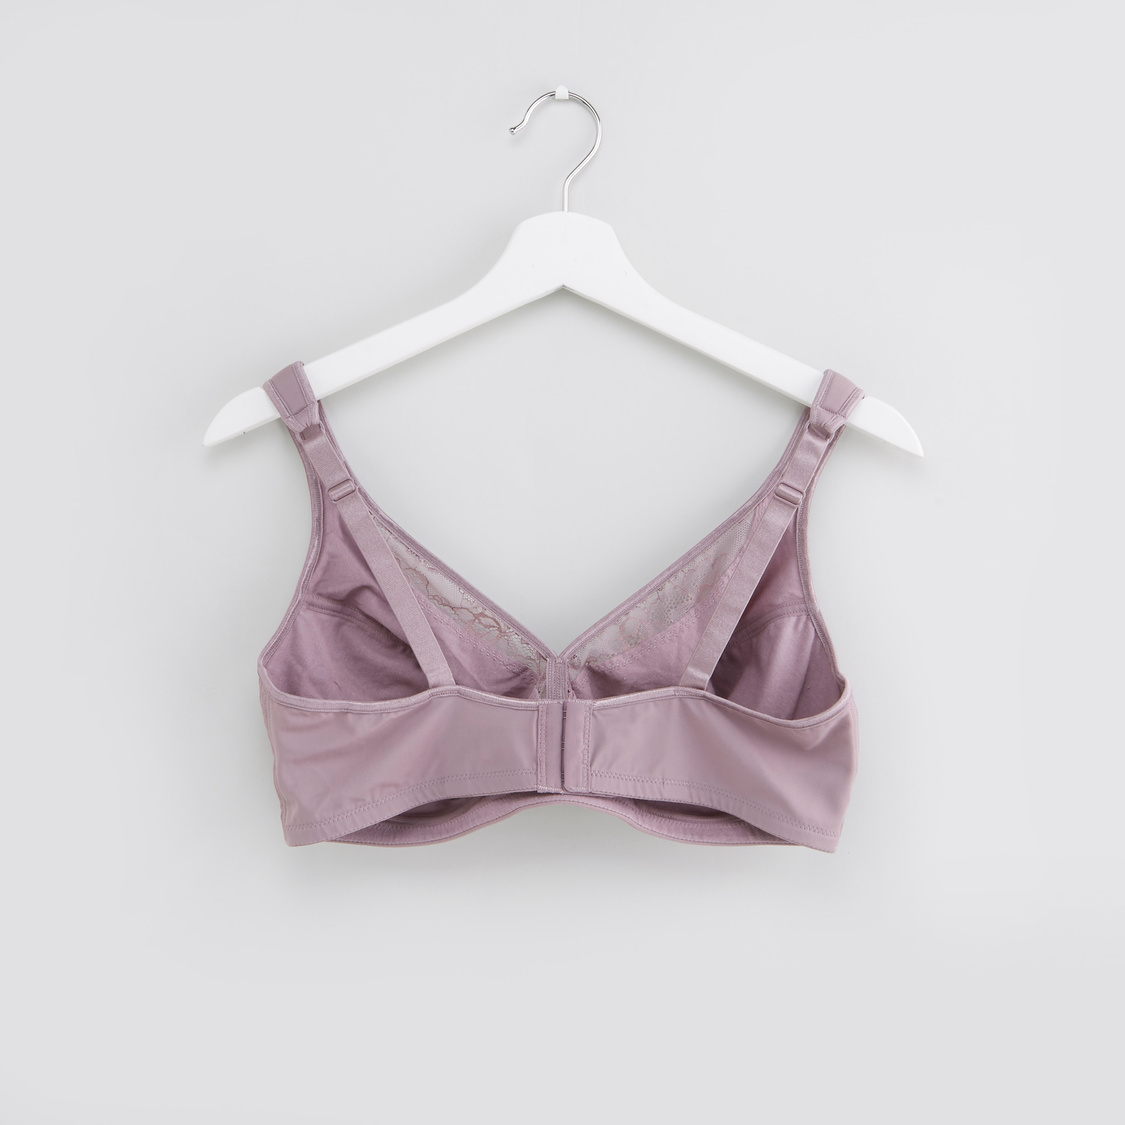 Lace Detail Double Mould Bra with Hook and Eye Closure